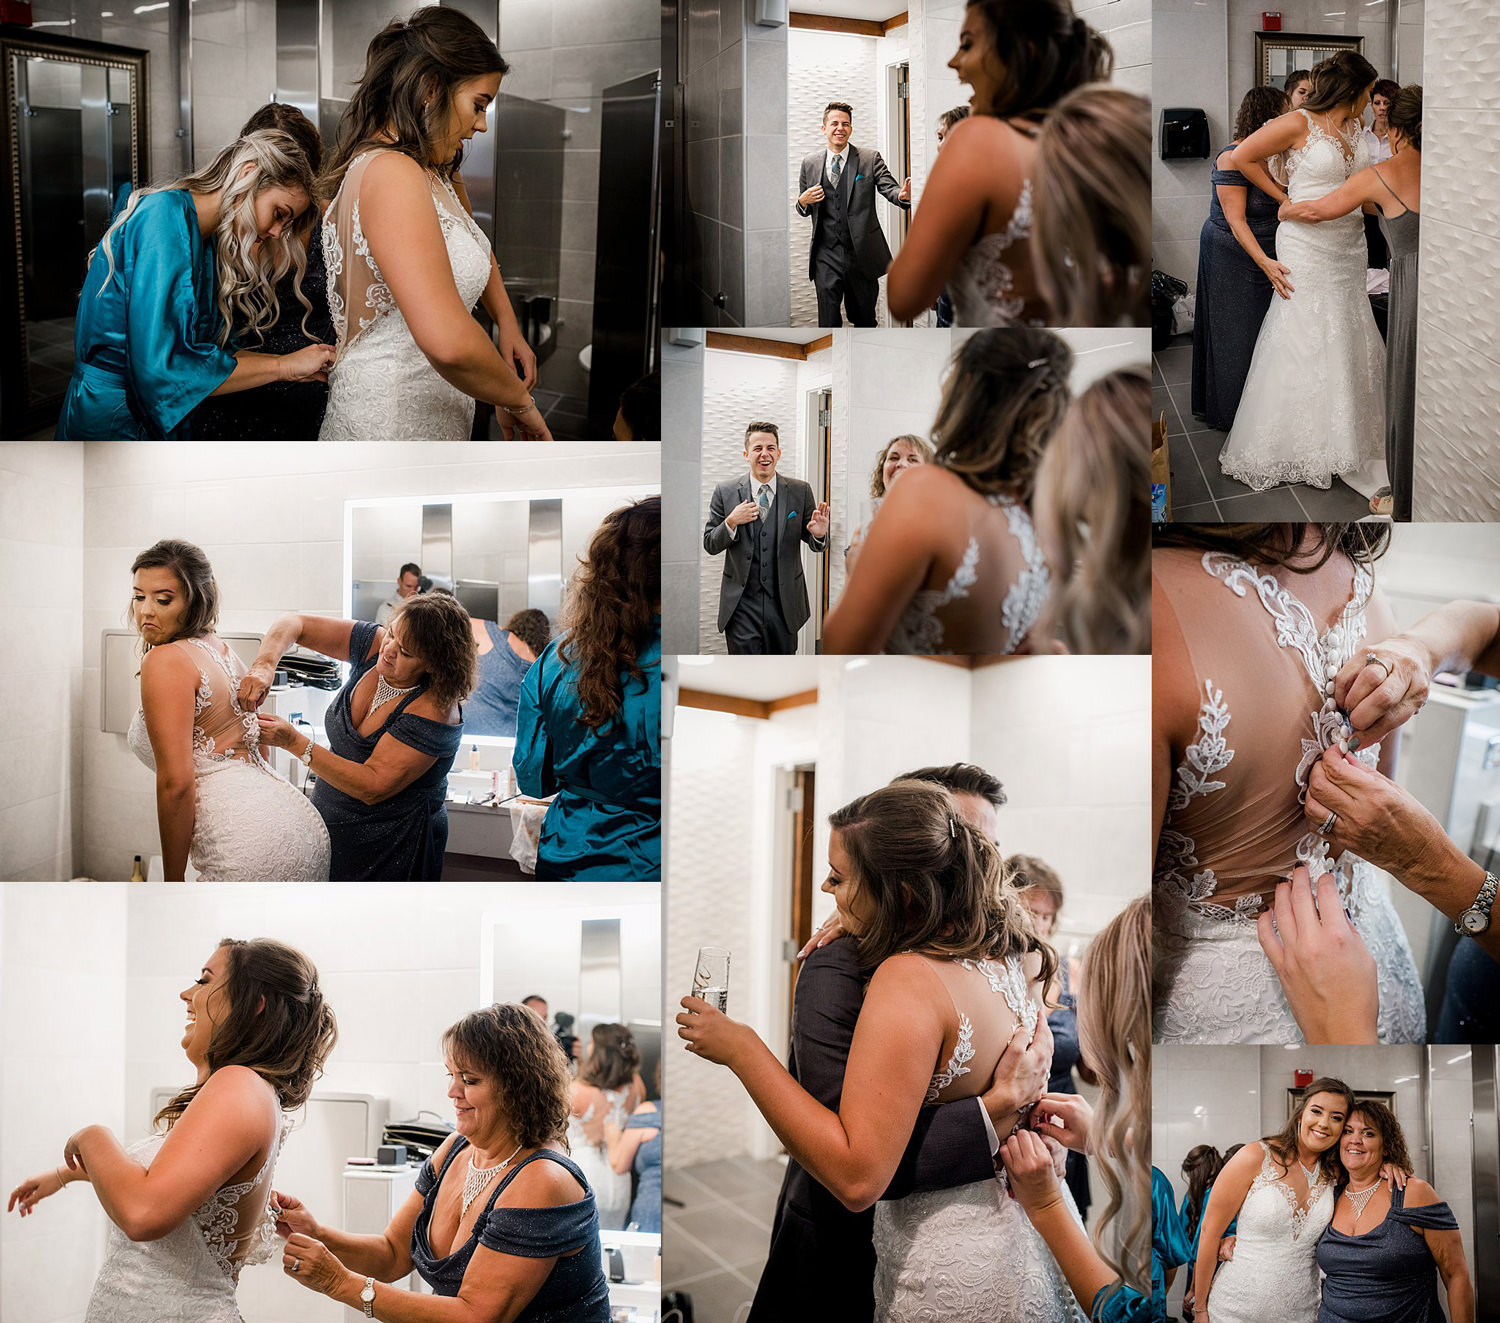 Virginia-beach-MOCA-wedding-preparation-virginia-wedding-photographer-melissa-bliss-photography.jpg